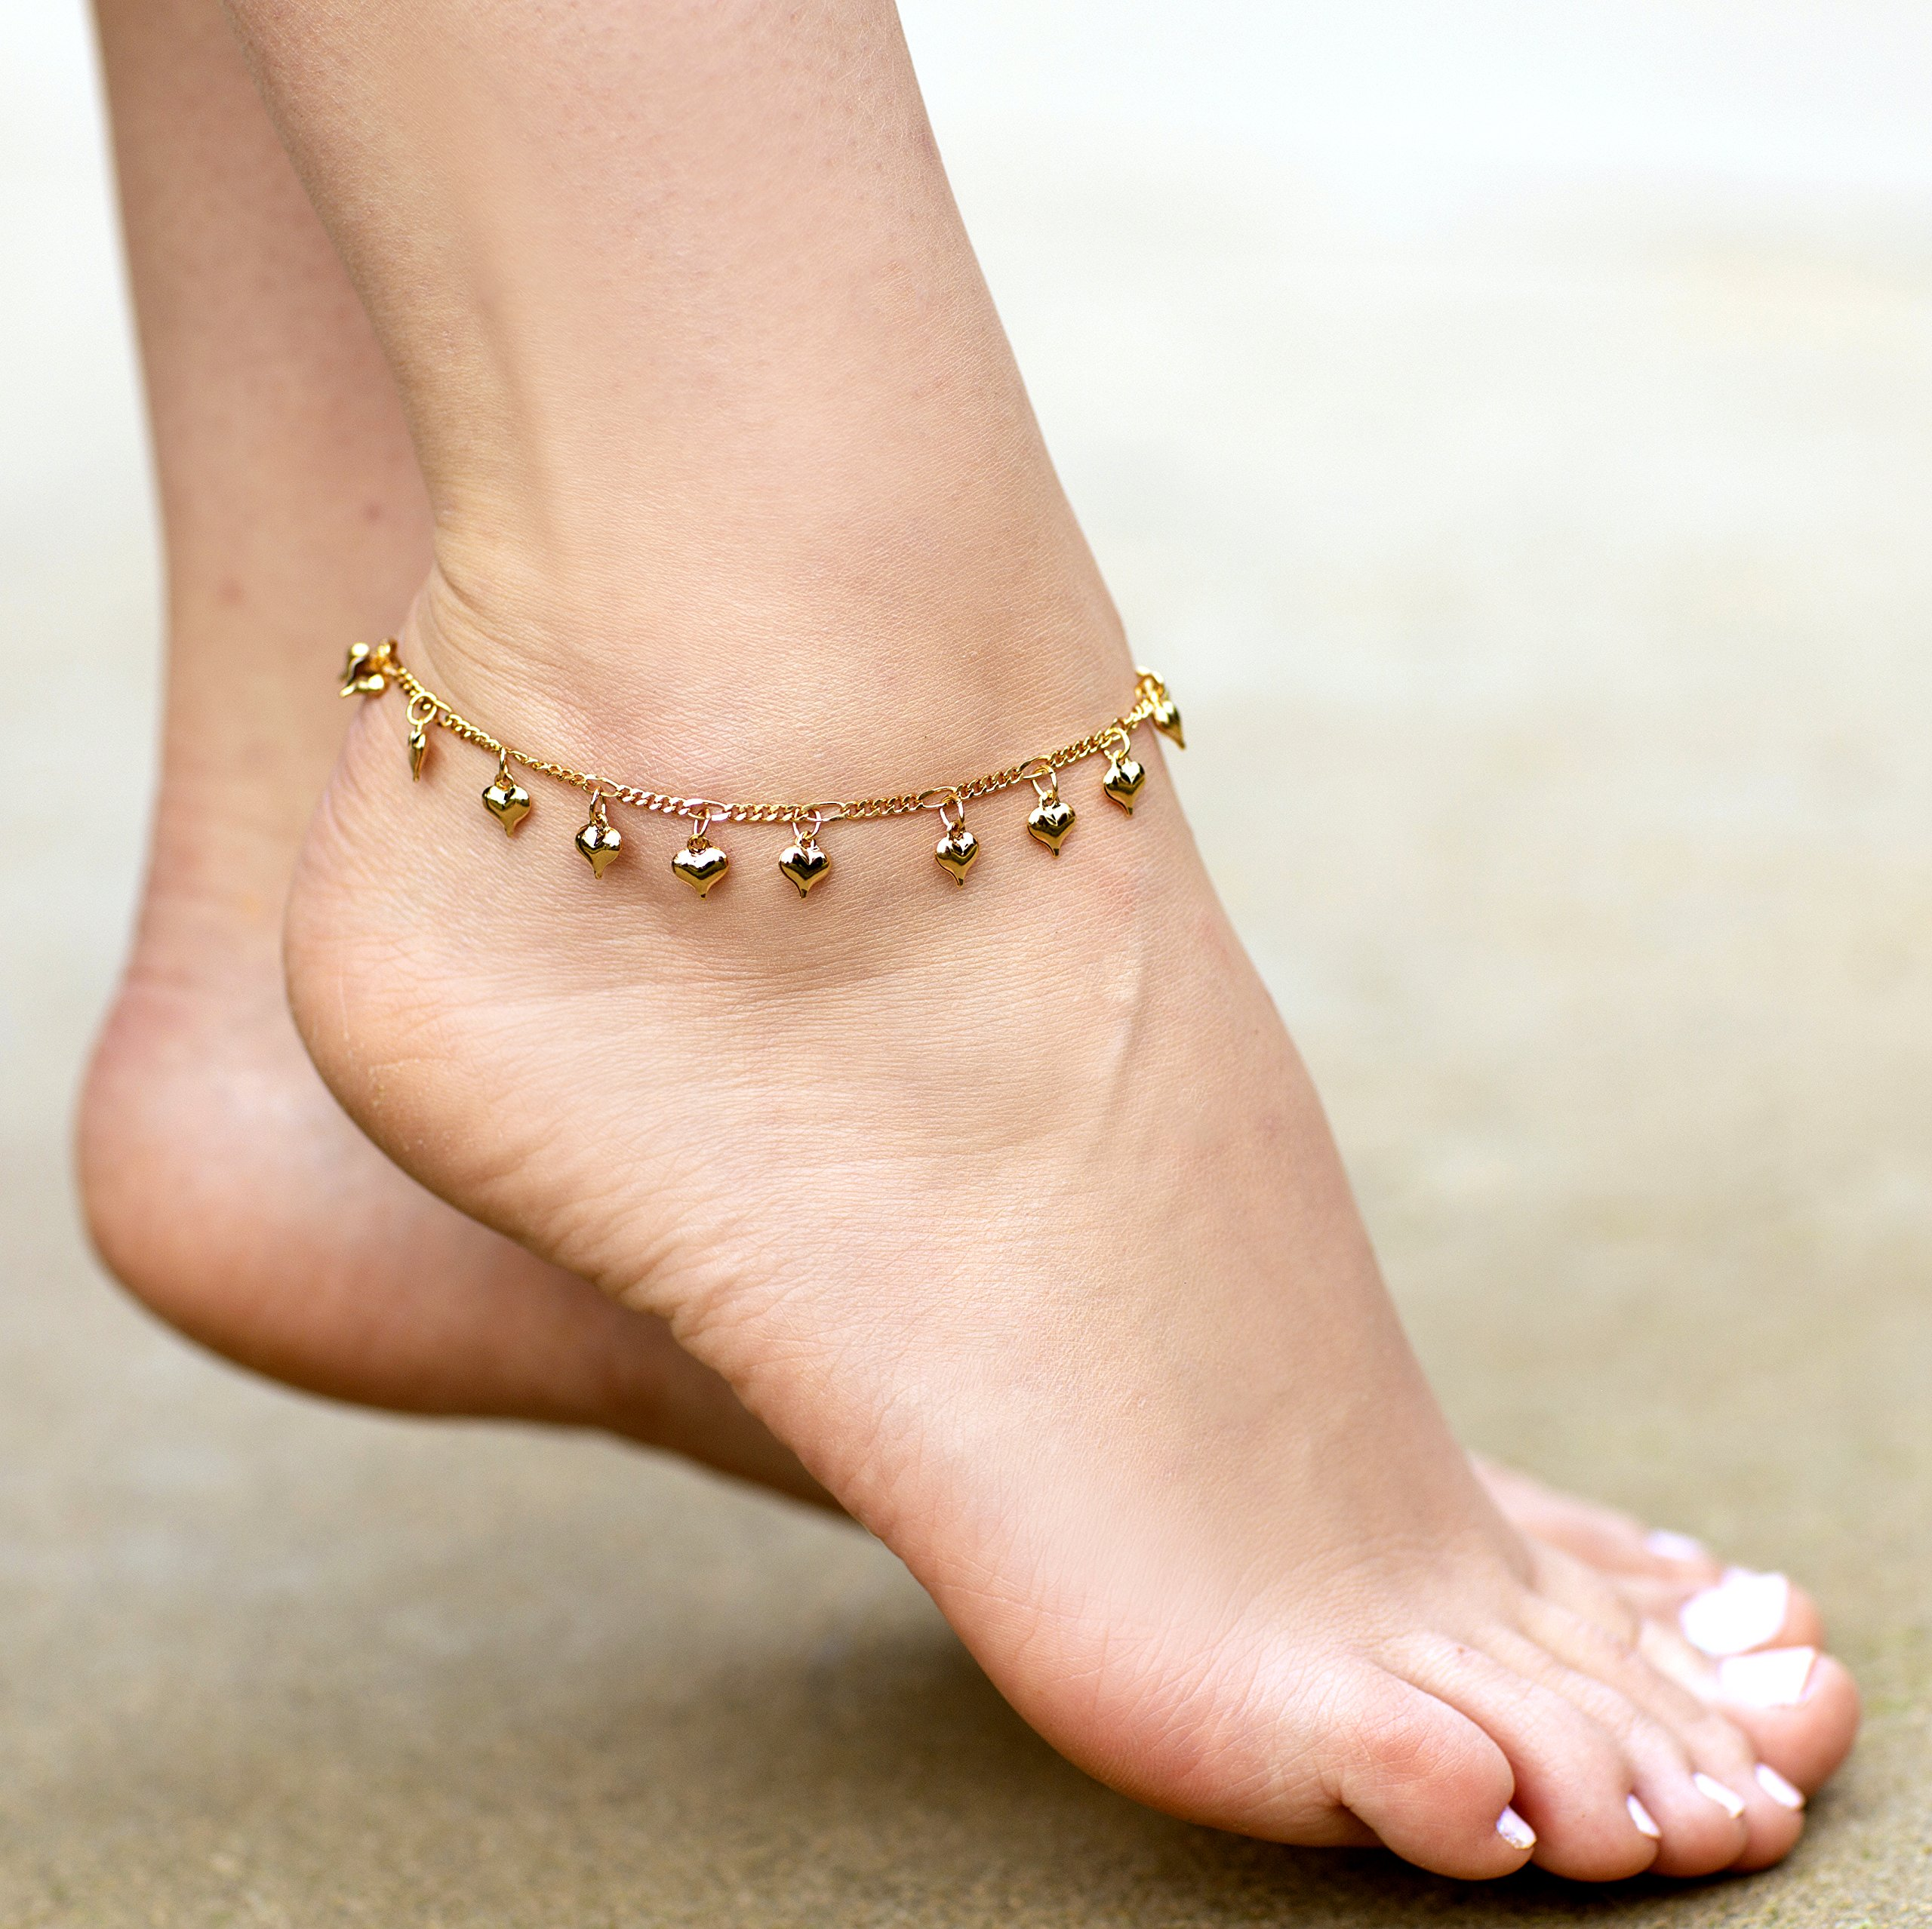 Lifetime Jewelry Anklets for Women and Teen Girls - 24K Gold Plated Chain with Dangling Hearts - Ankle Bracelet to Wear at Beach or Party - Cute Surfer Anklet - 9 10 and 11 inches (9) by Lifetime Jewelry (Image #7)